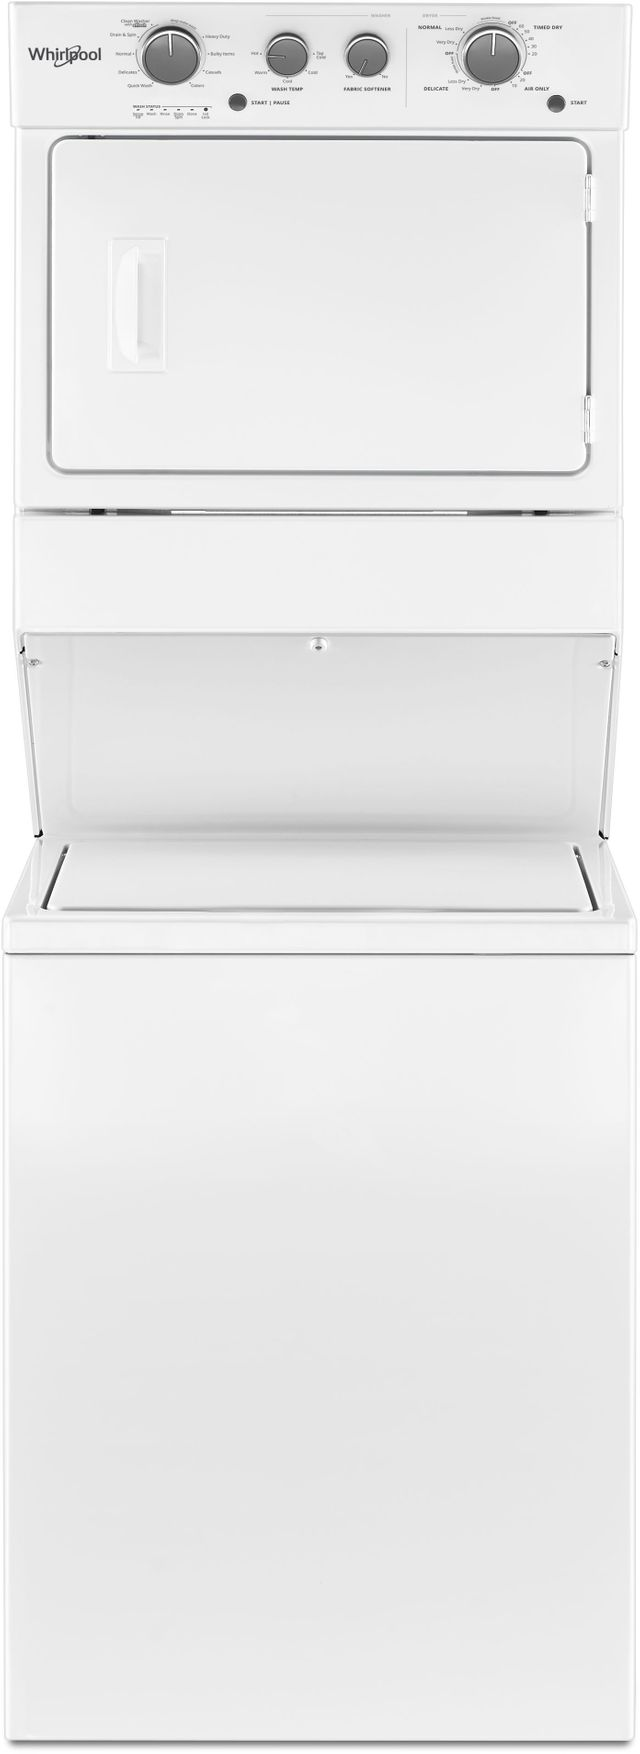 Whirlpool® Electric Long Vent Stacked Laundry-White-WETLV27HW